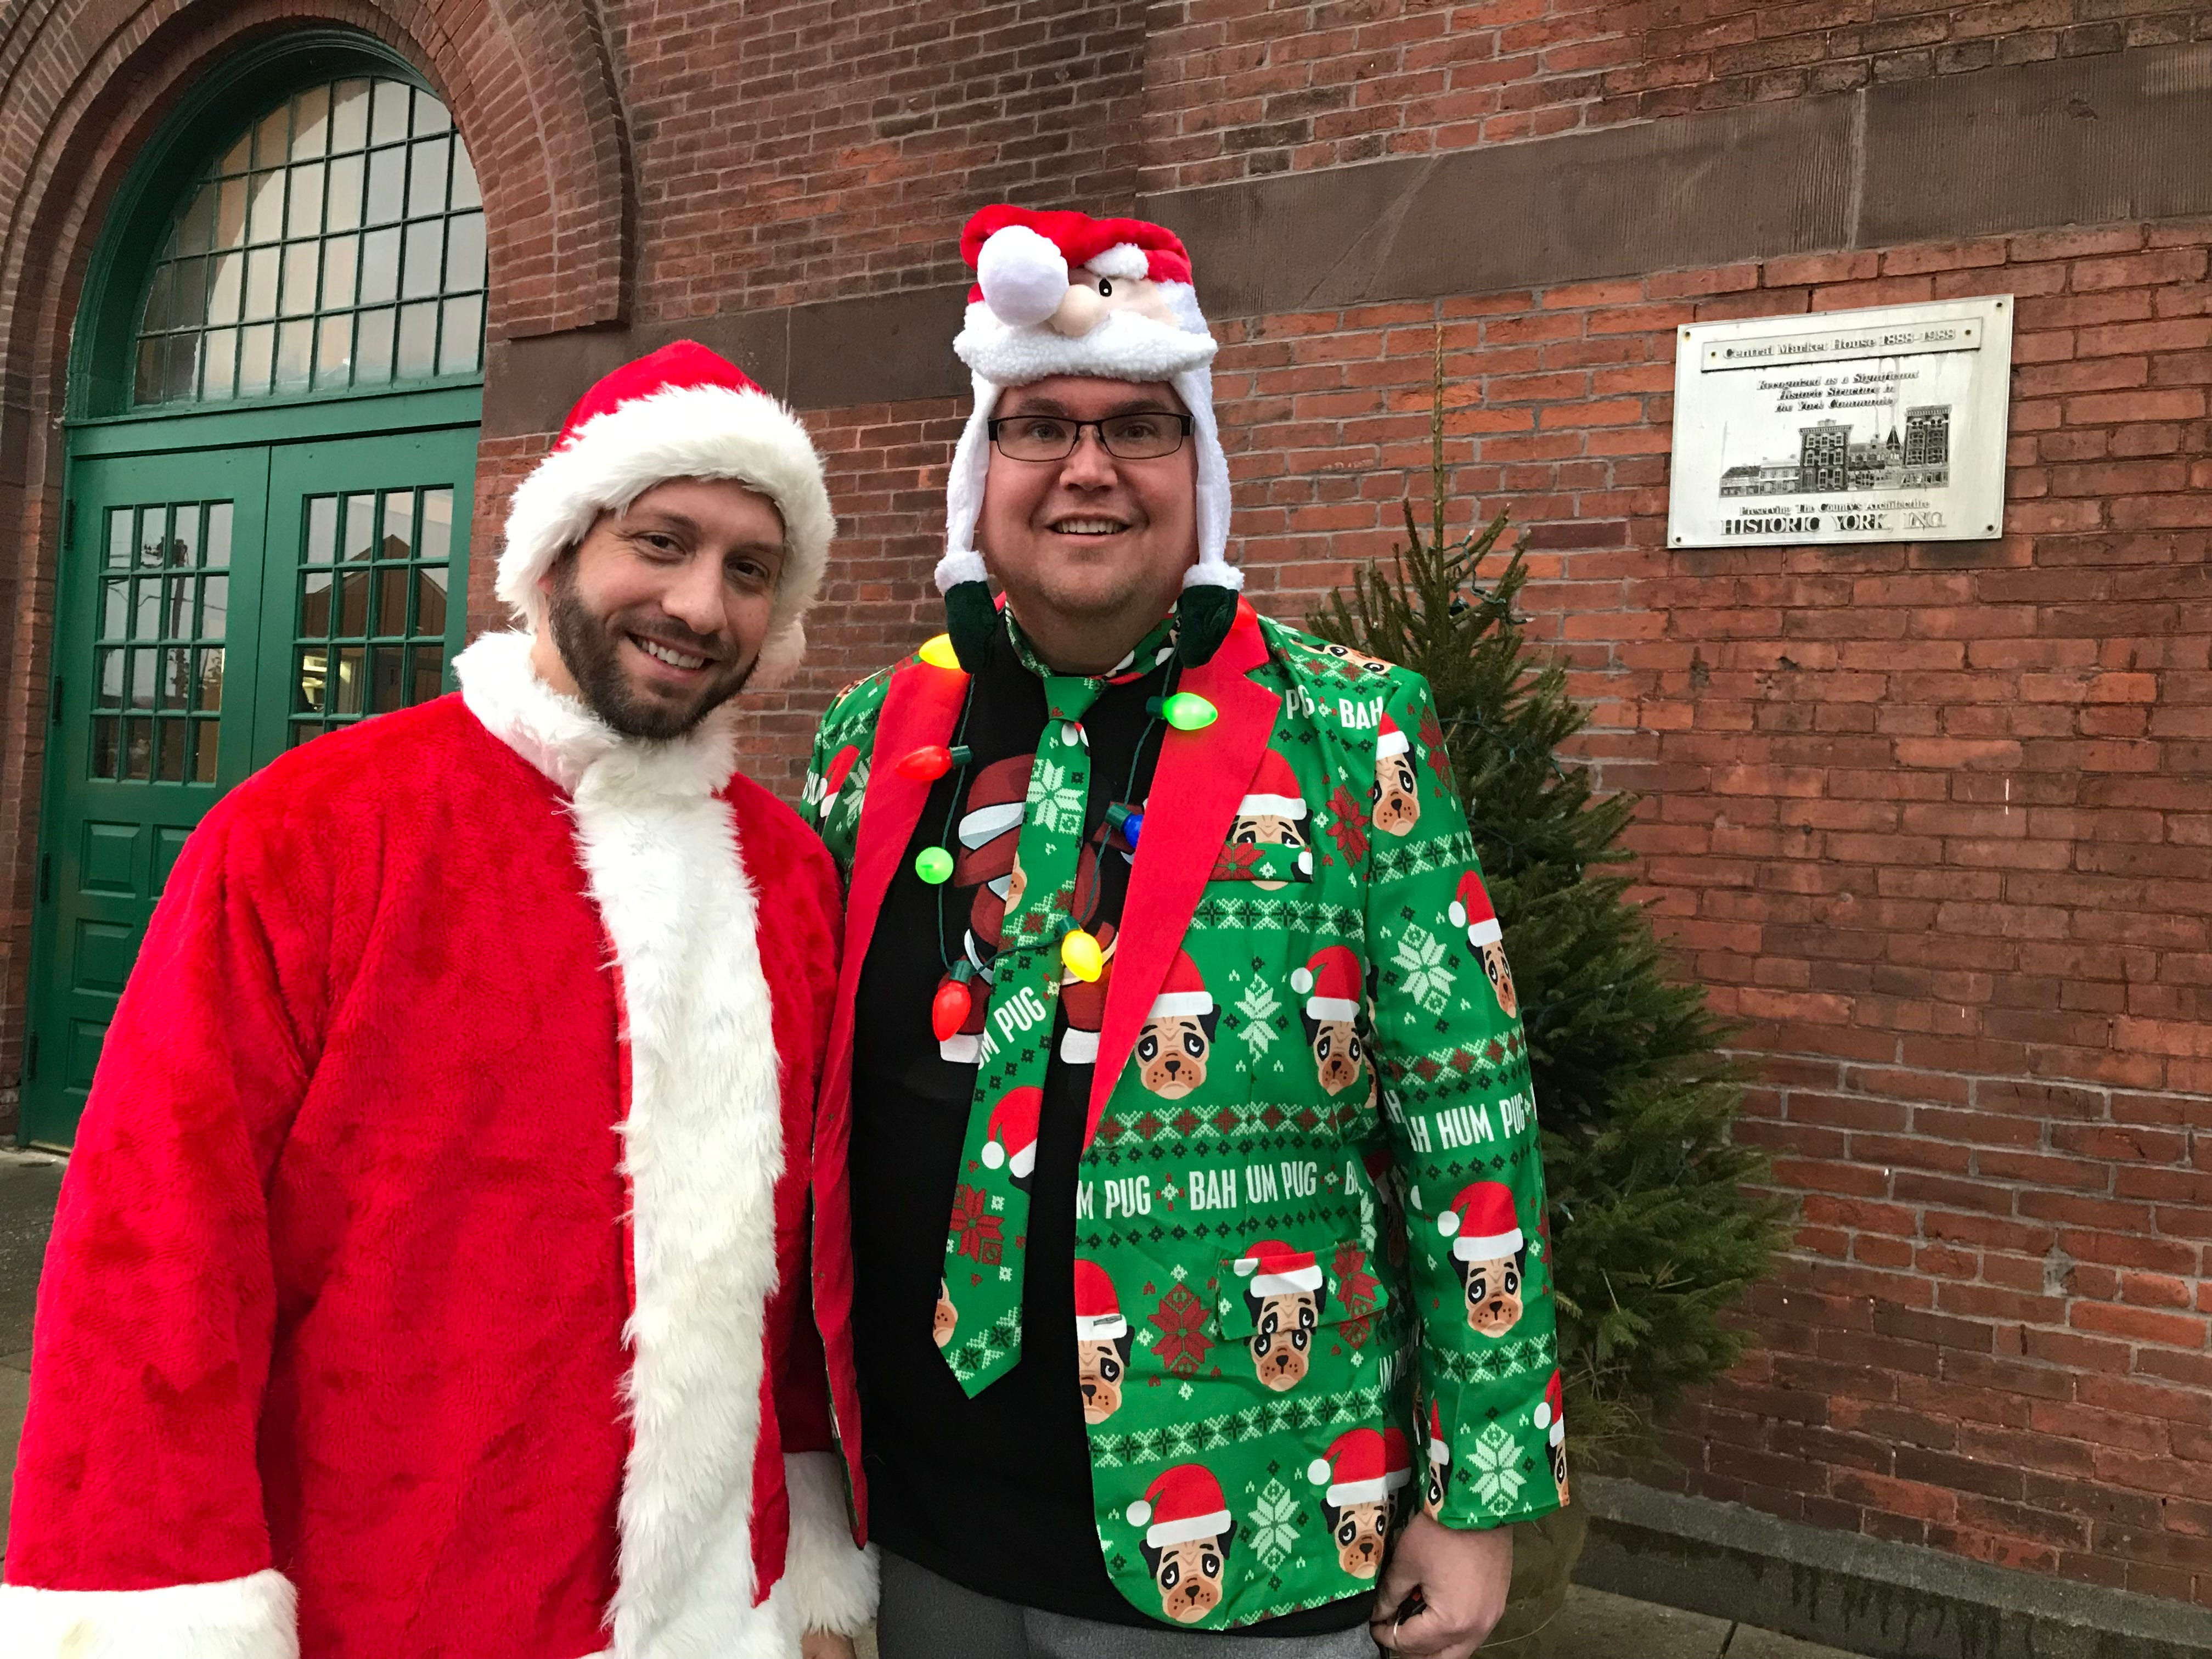 Ben Guerin of Bethlehem (left) and Bill Walter of York showcase some holiday spirit during Light Up Night in downtown York on Dec. 1, 2018.